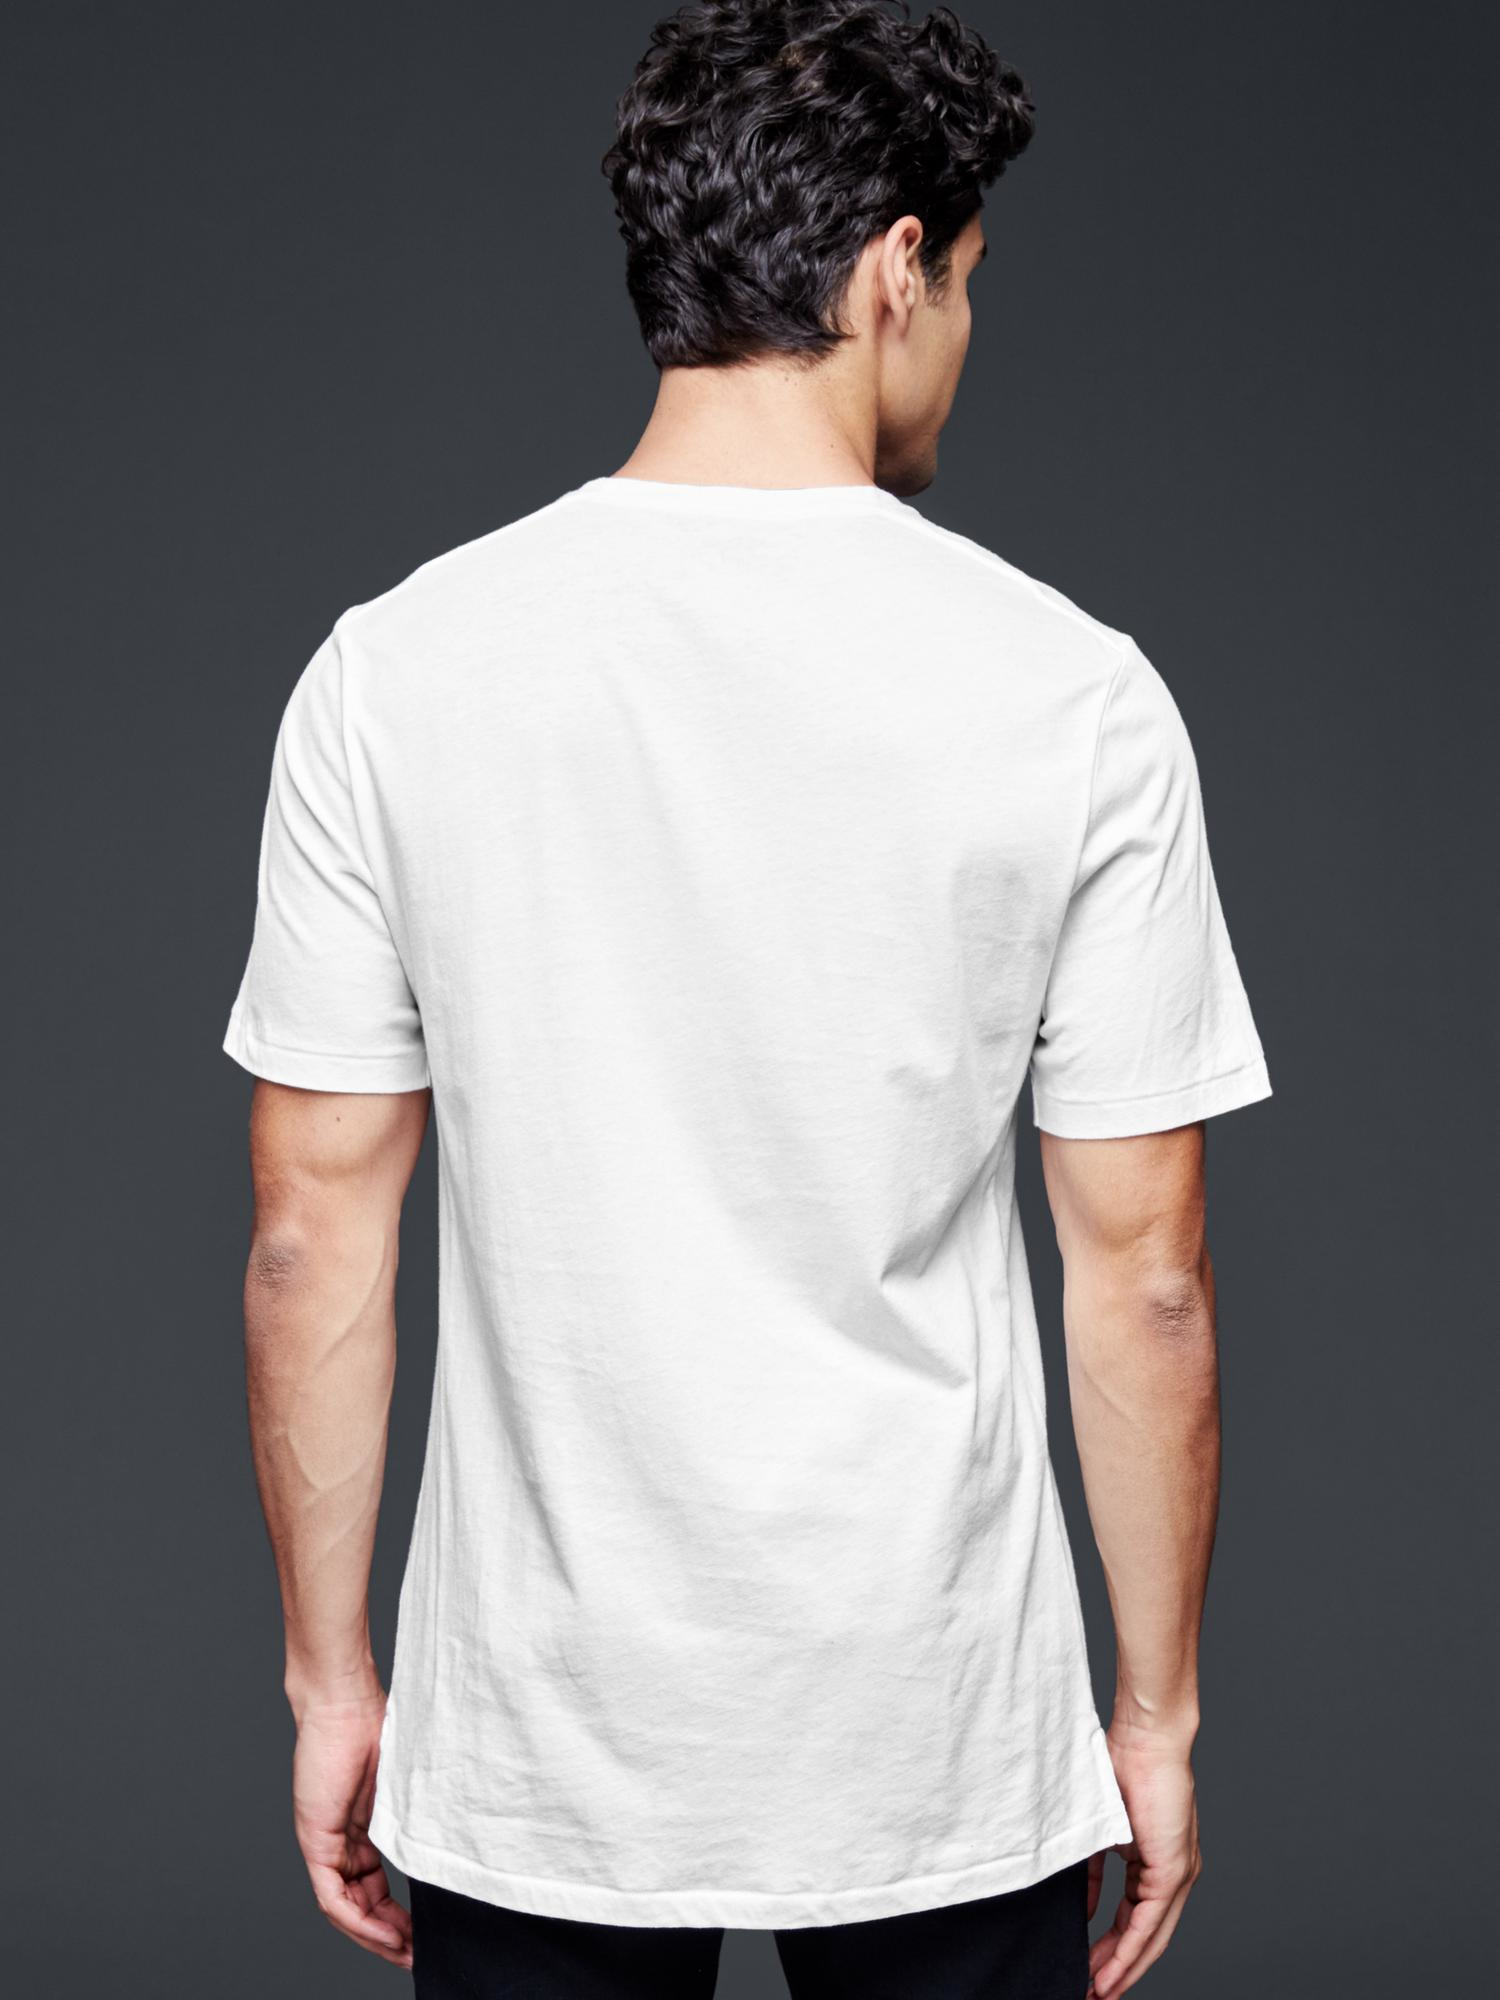 Gap Gq Stampd 99 T Shirt In White For Men Lyst